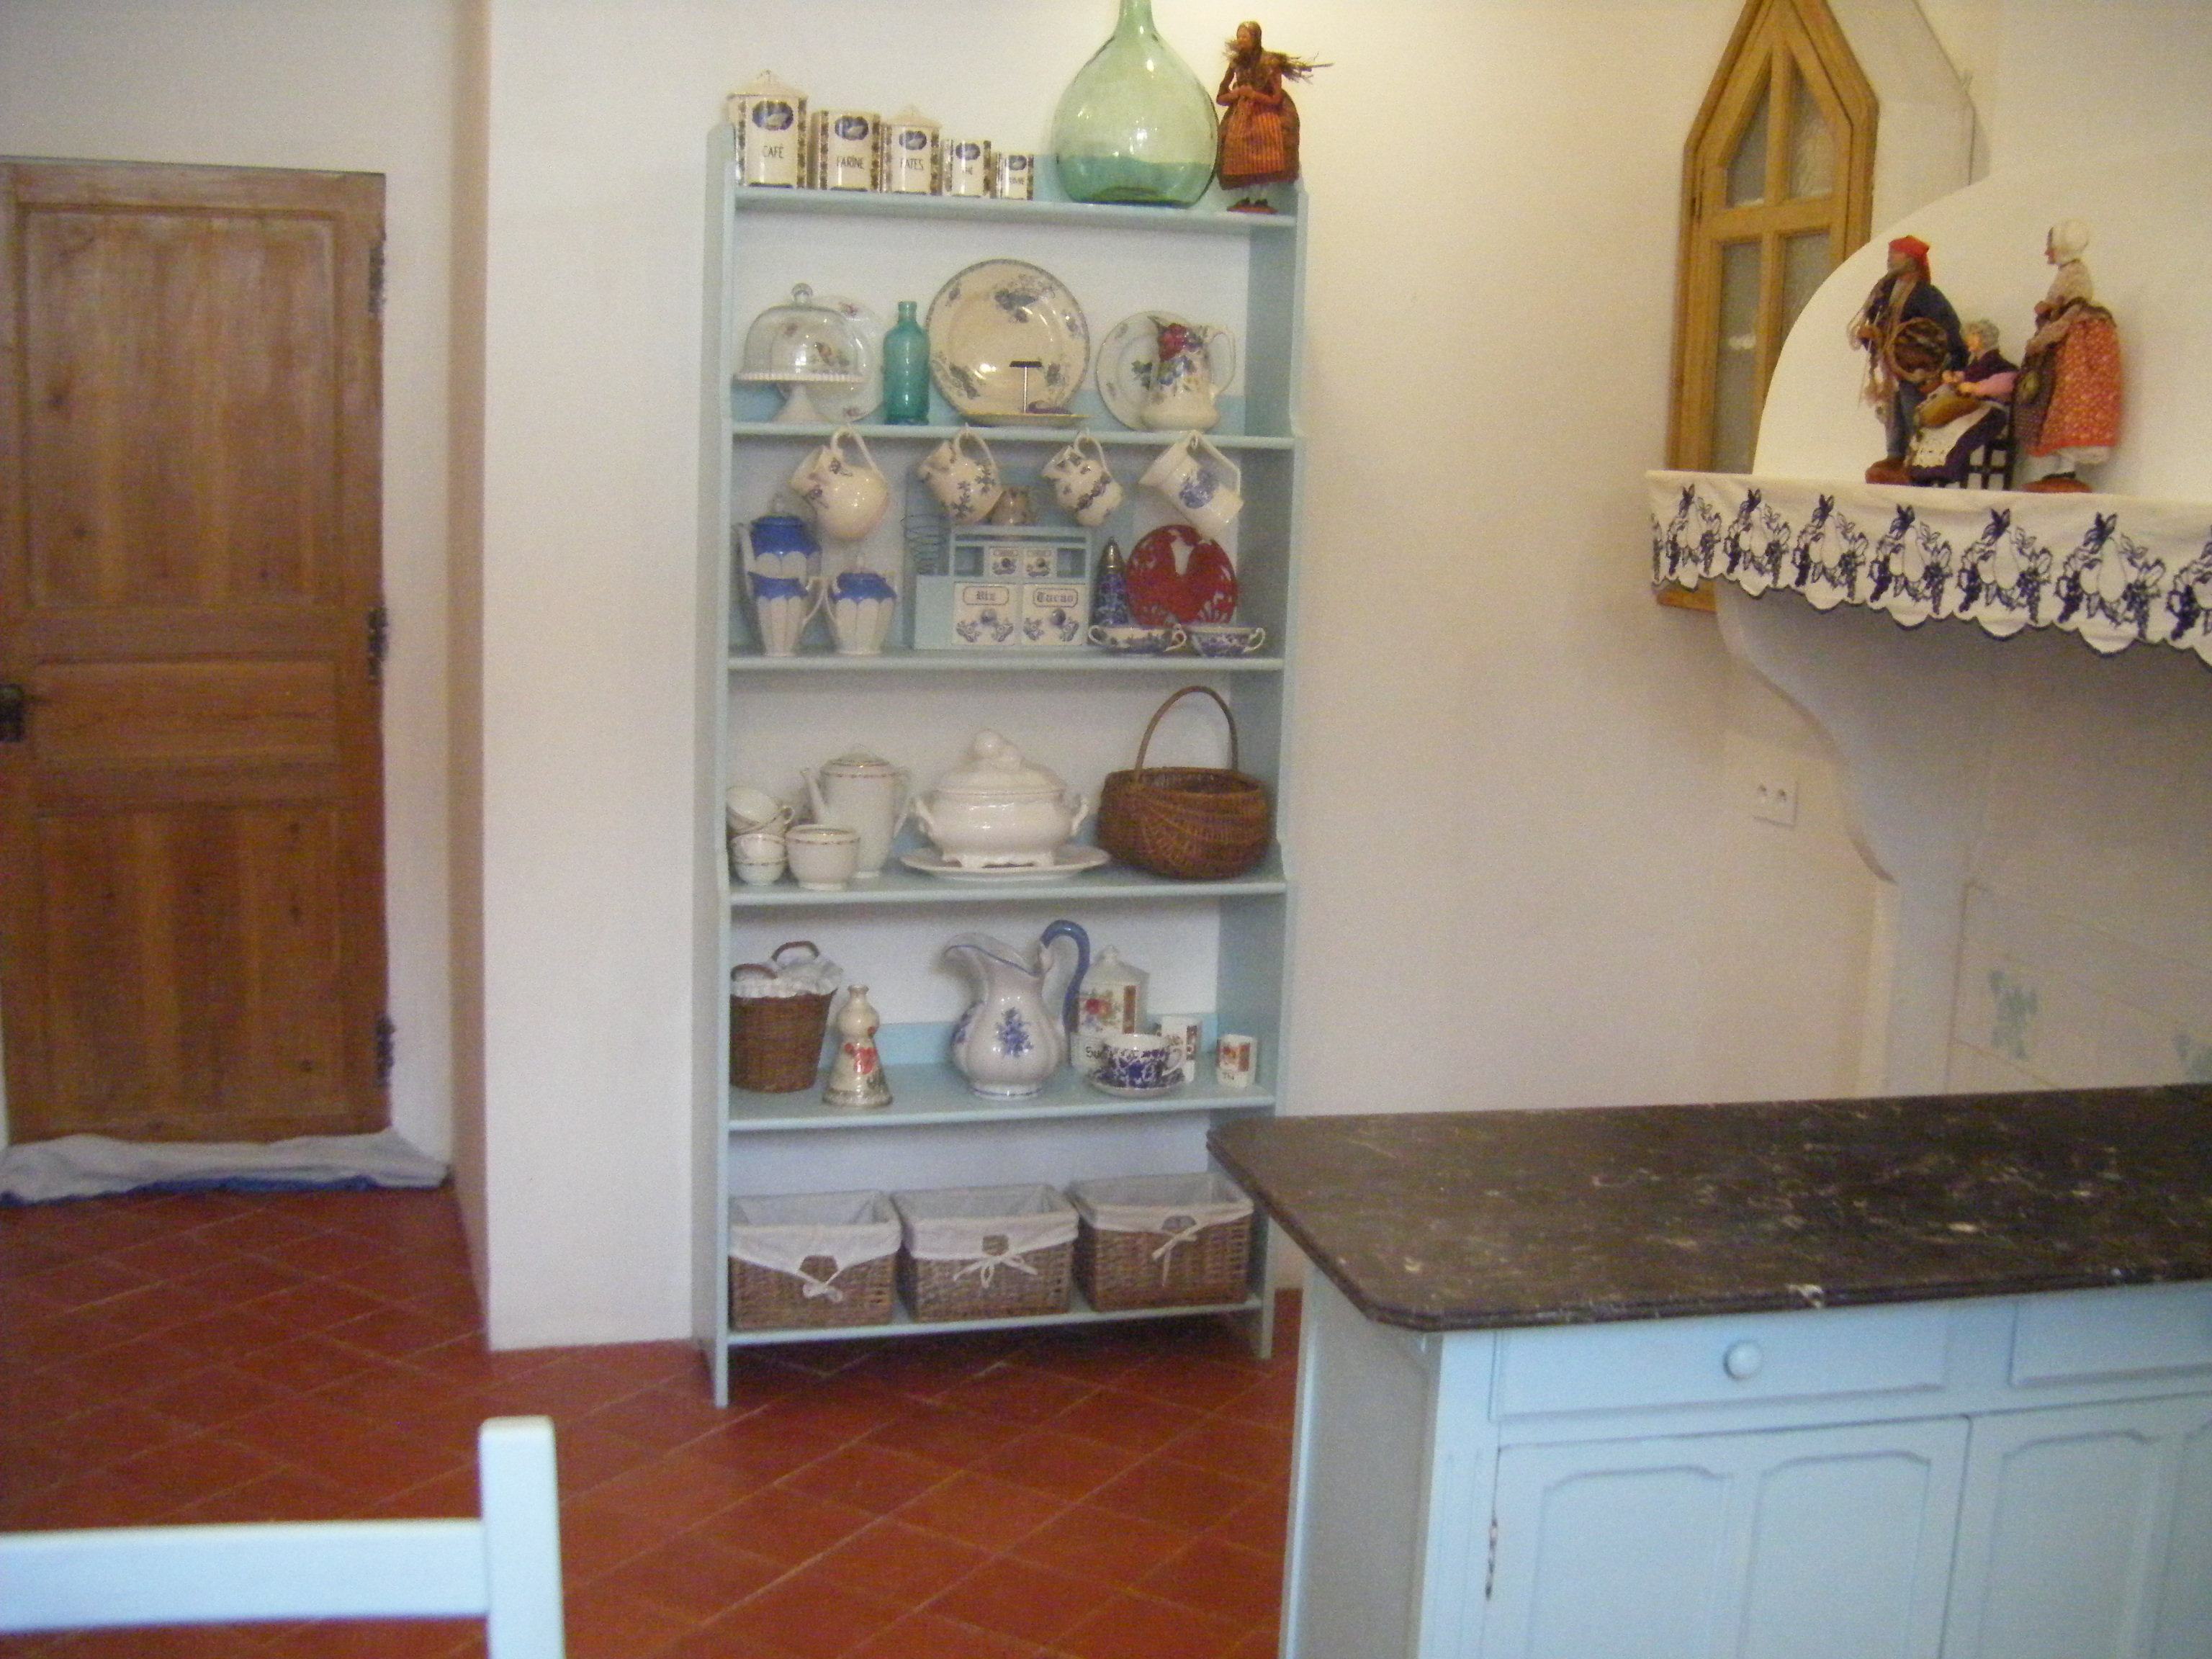 Kitchen and display of memorabilia